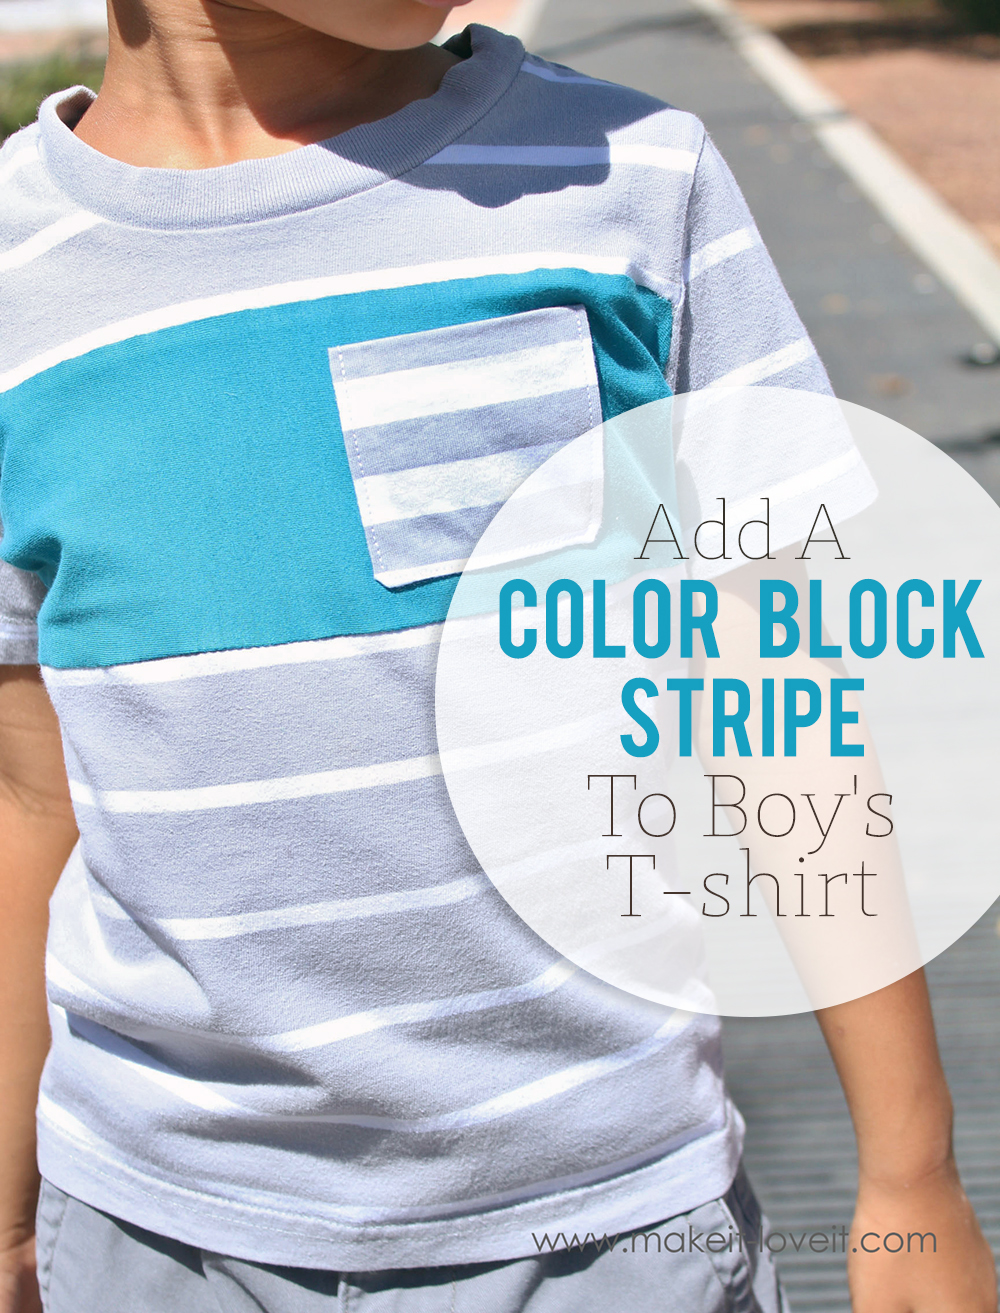 Add a color block stripe to boys t shirt